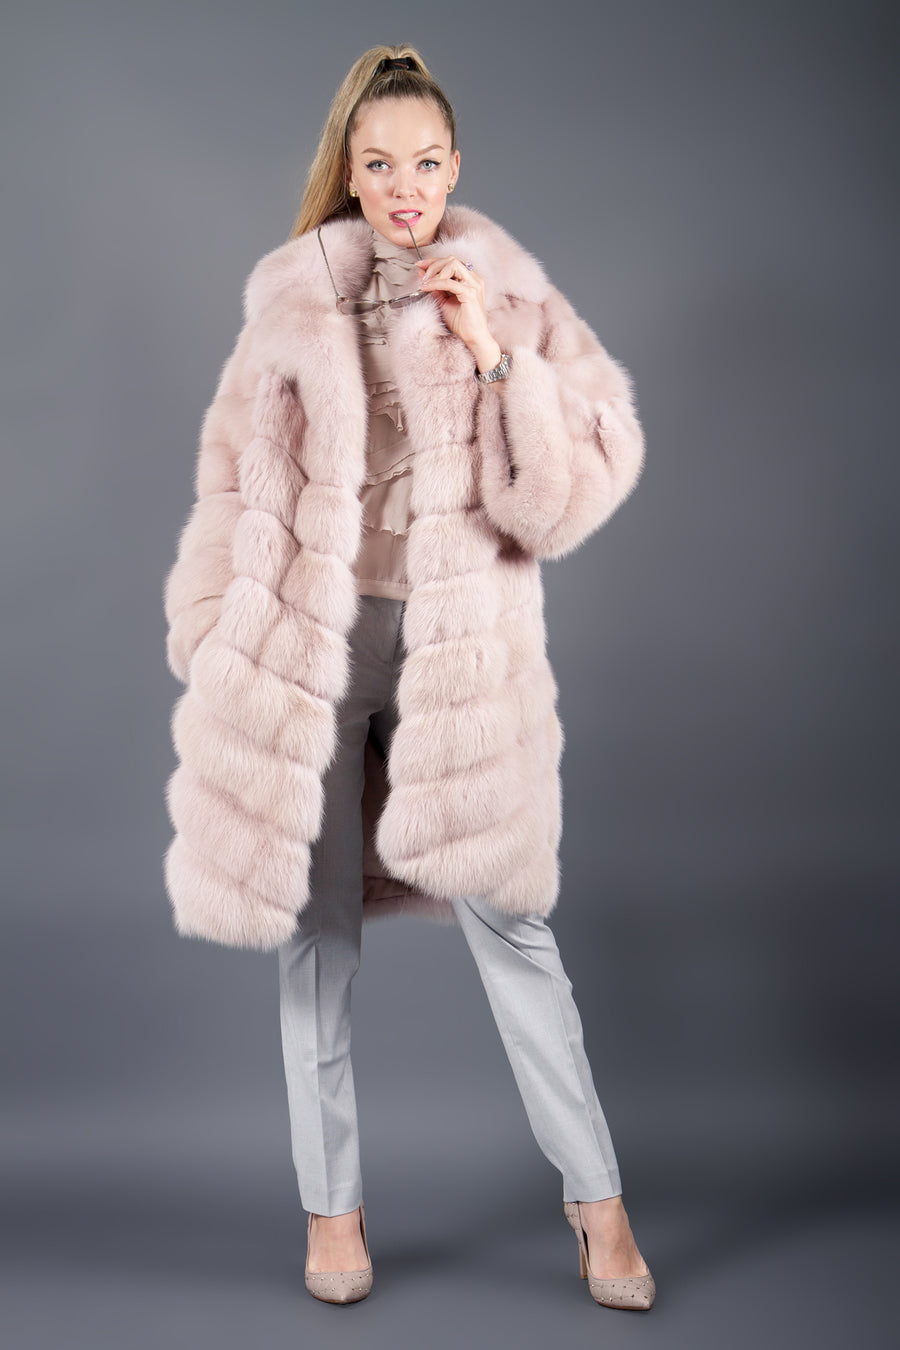 Dyed Pink Sable coat